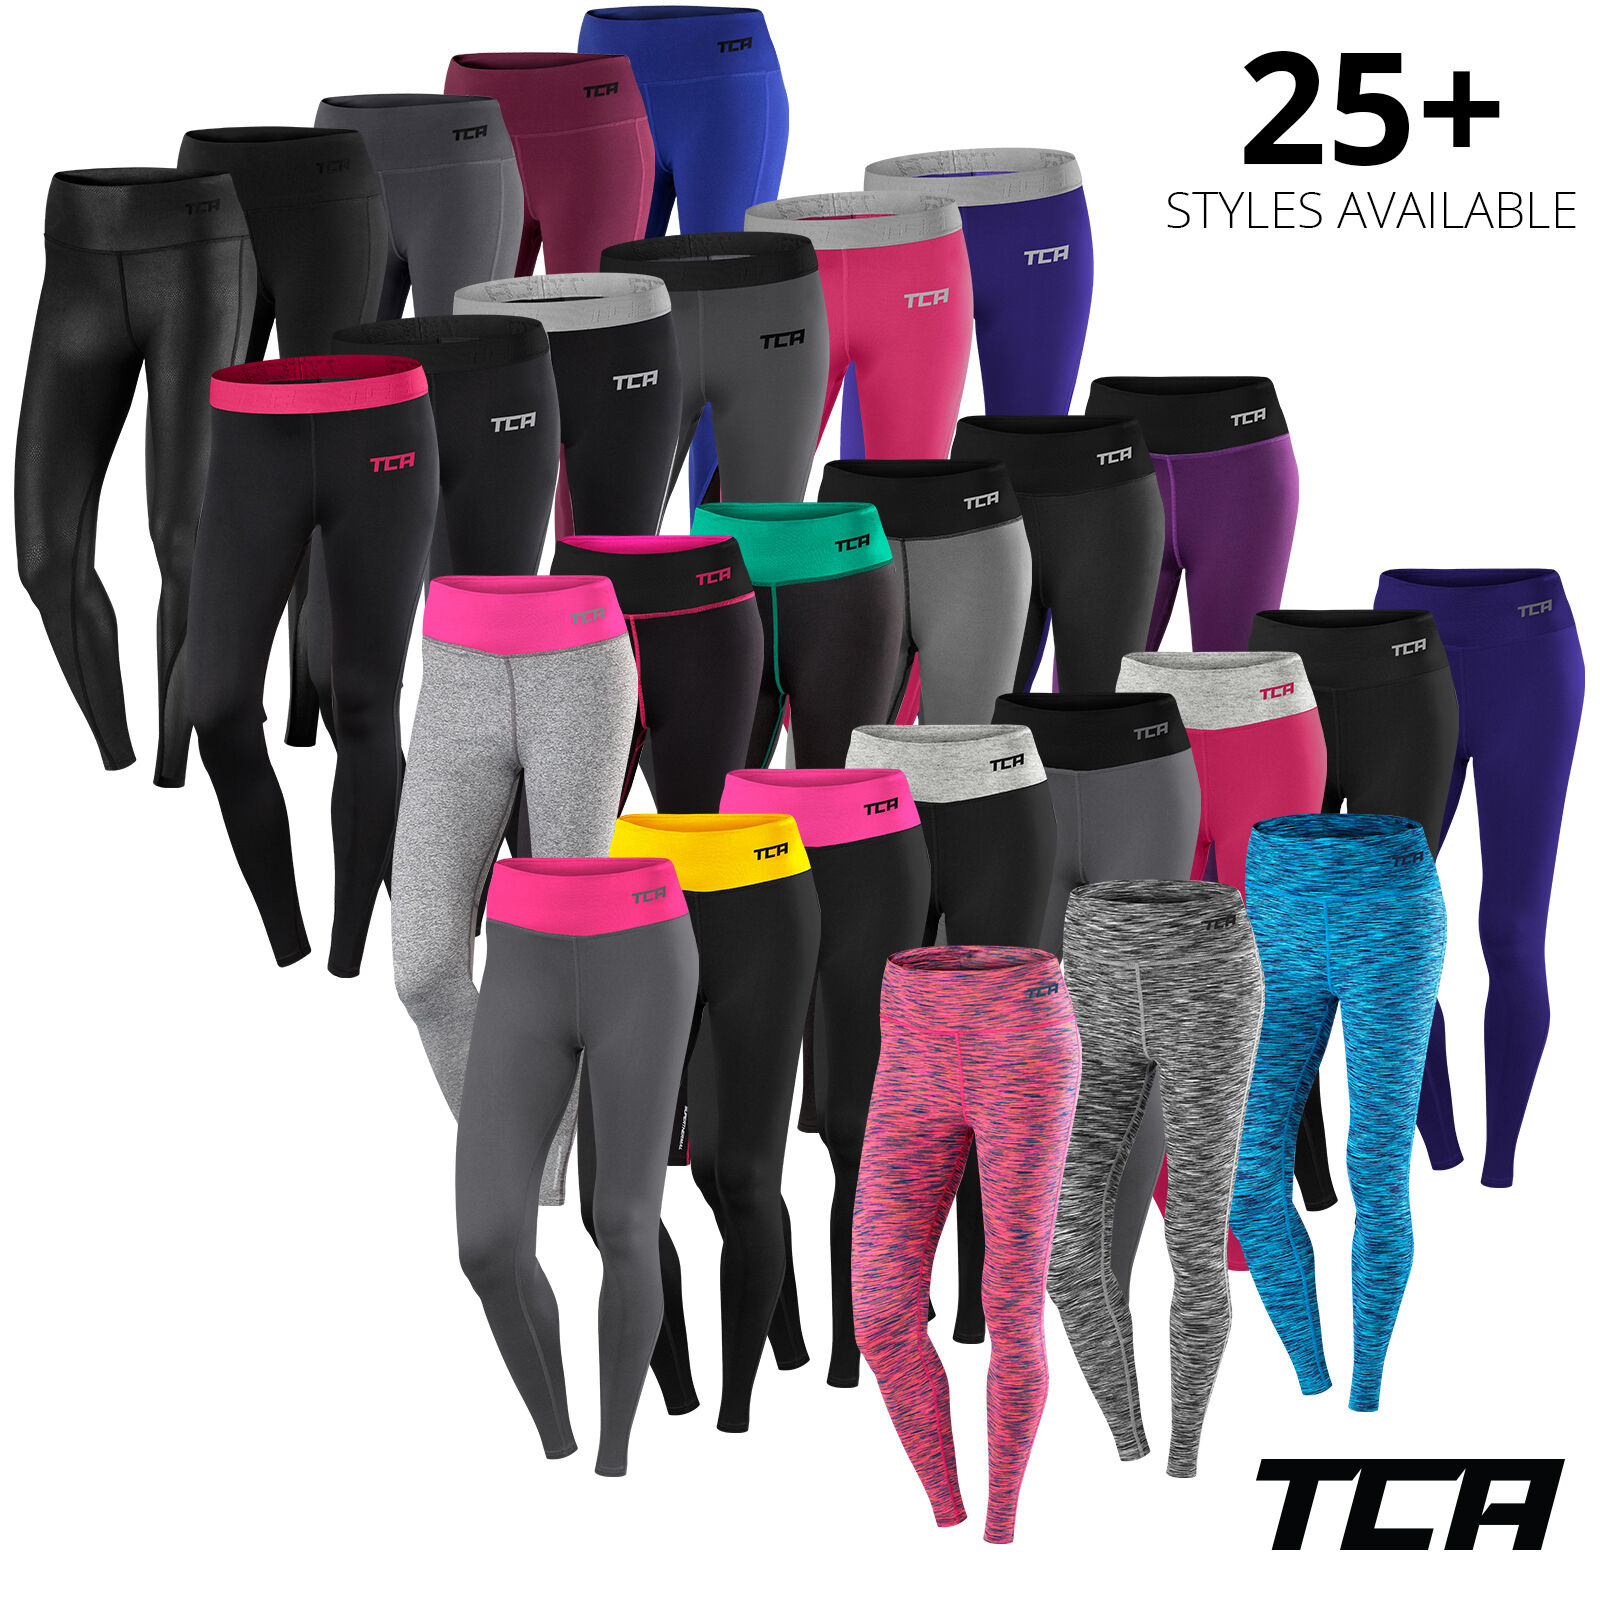 Womens TCA Workout Leggings Bottoms Running Gym Zumba Yoga Fitness